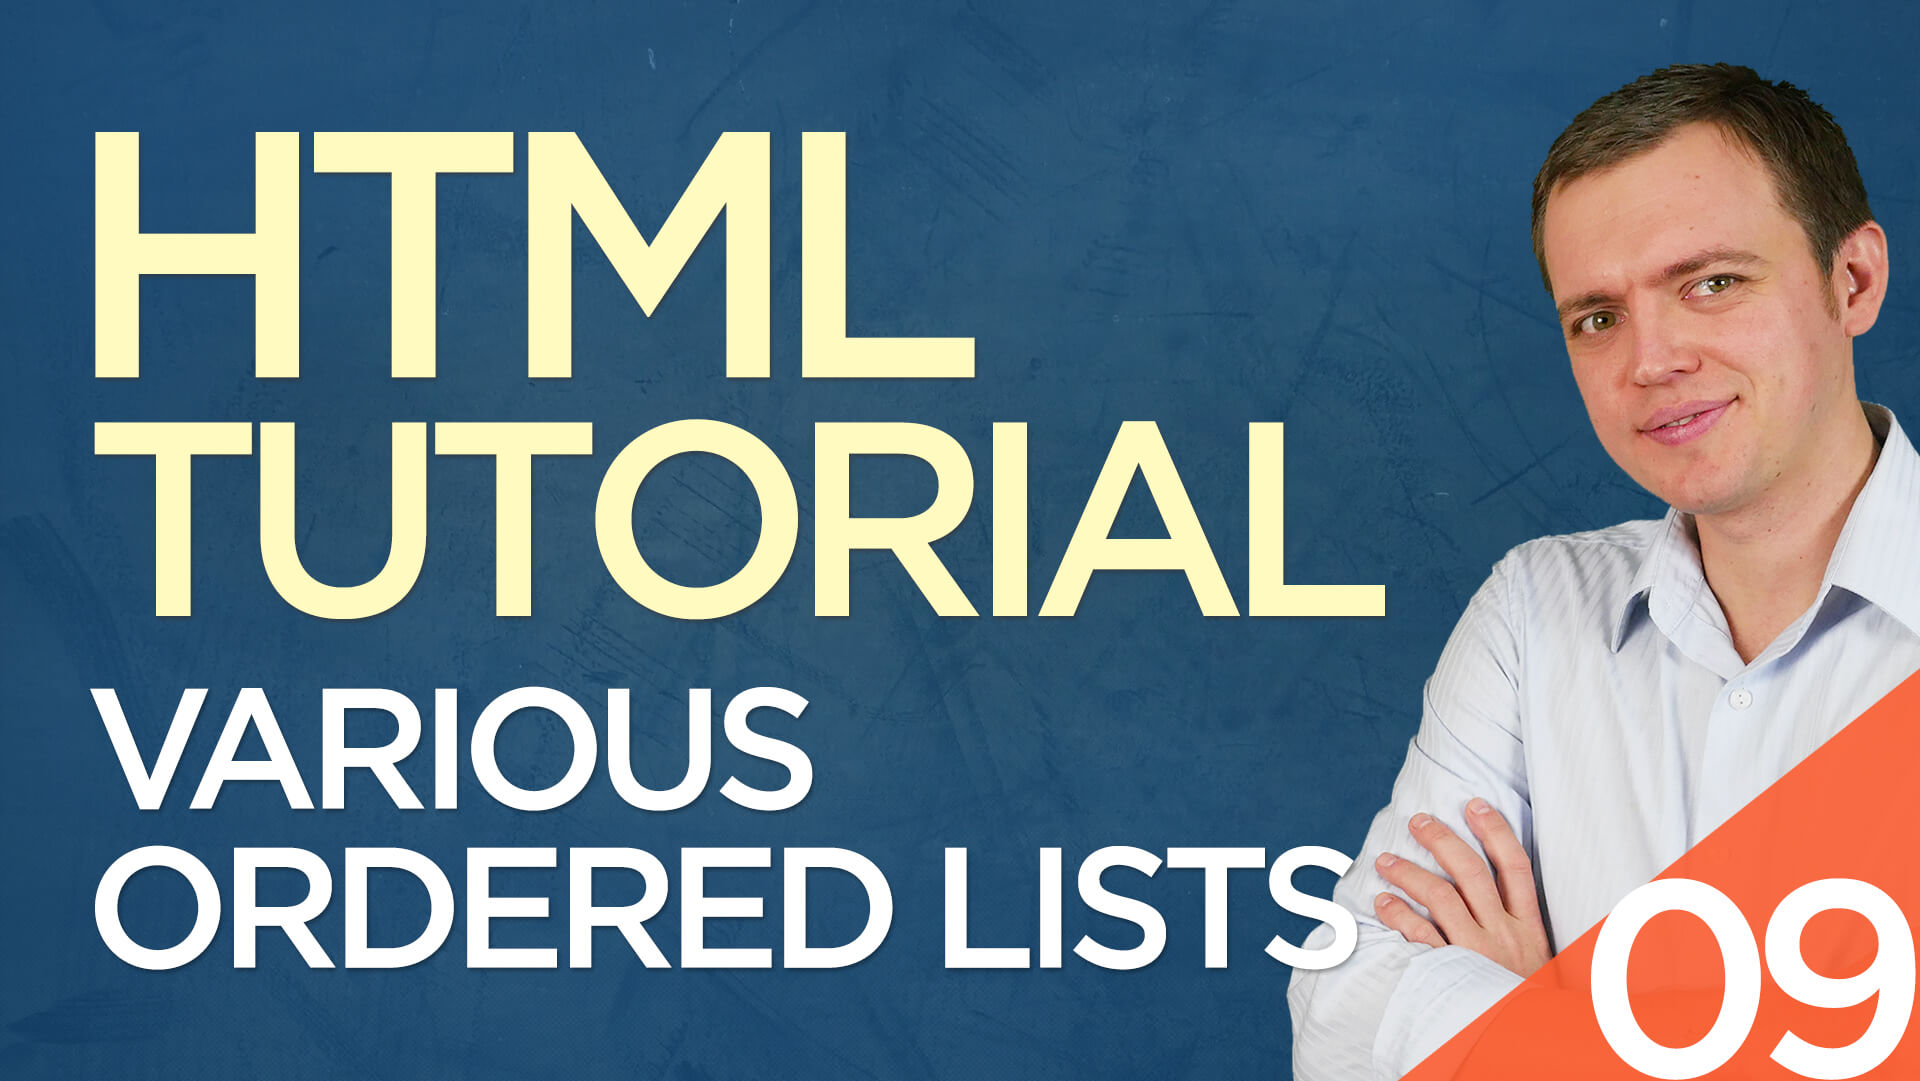 HTML Tutorial for Beginners: 09 Various Types of Ordered Lists (Roman Numerals)